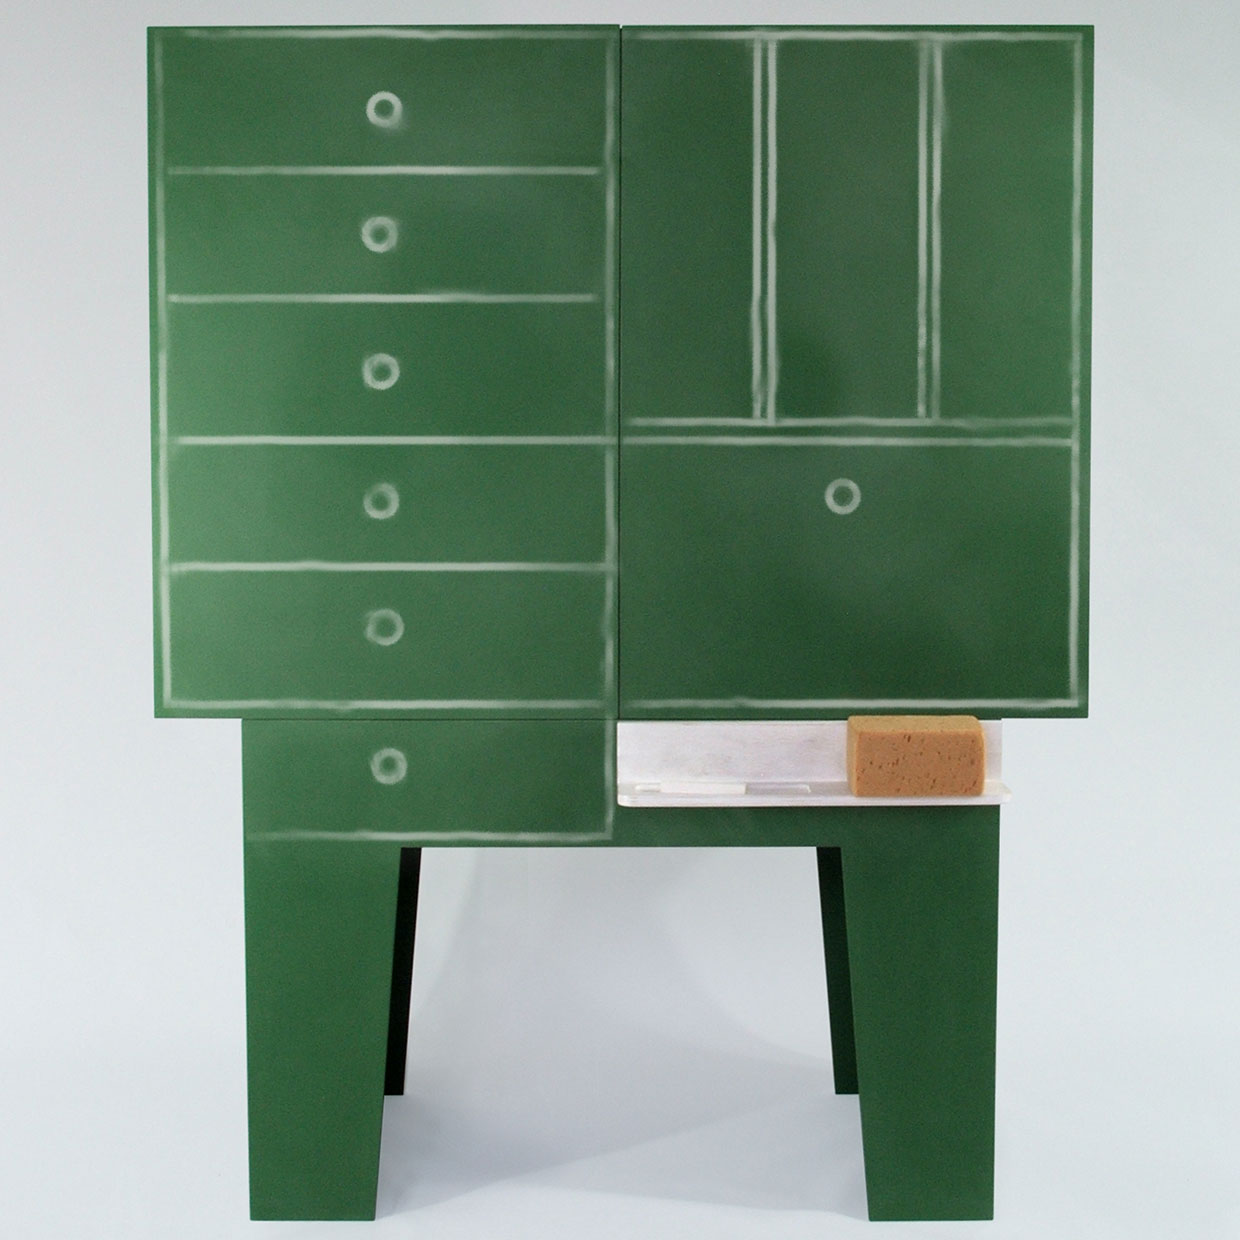 afilii_creative-design-for-kids_storage-cabinet_peter-jakubik_1